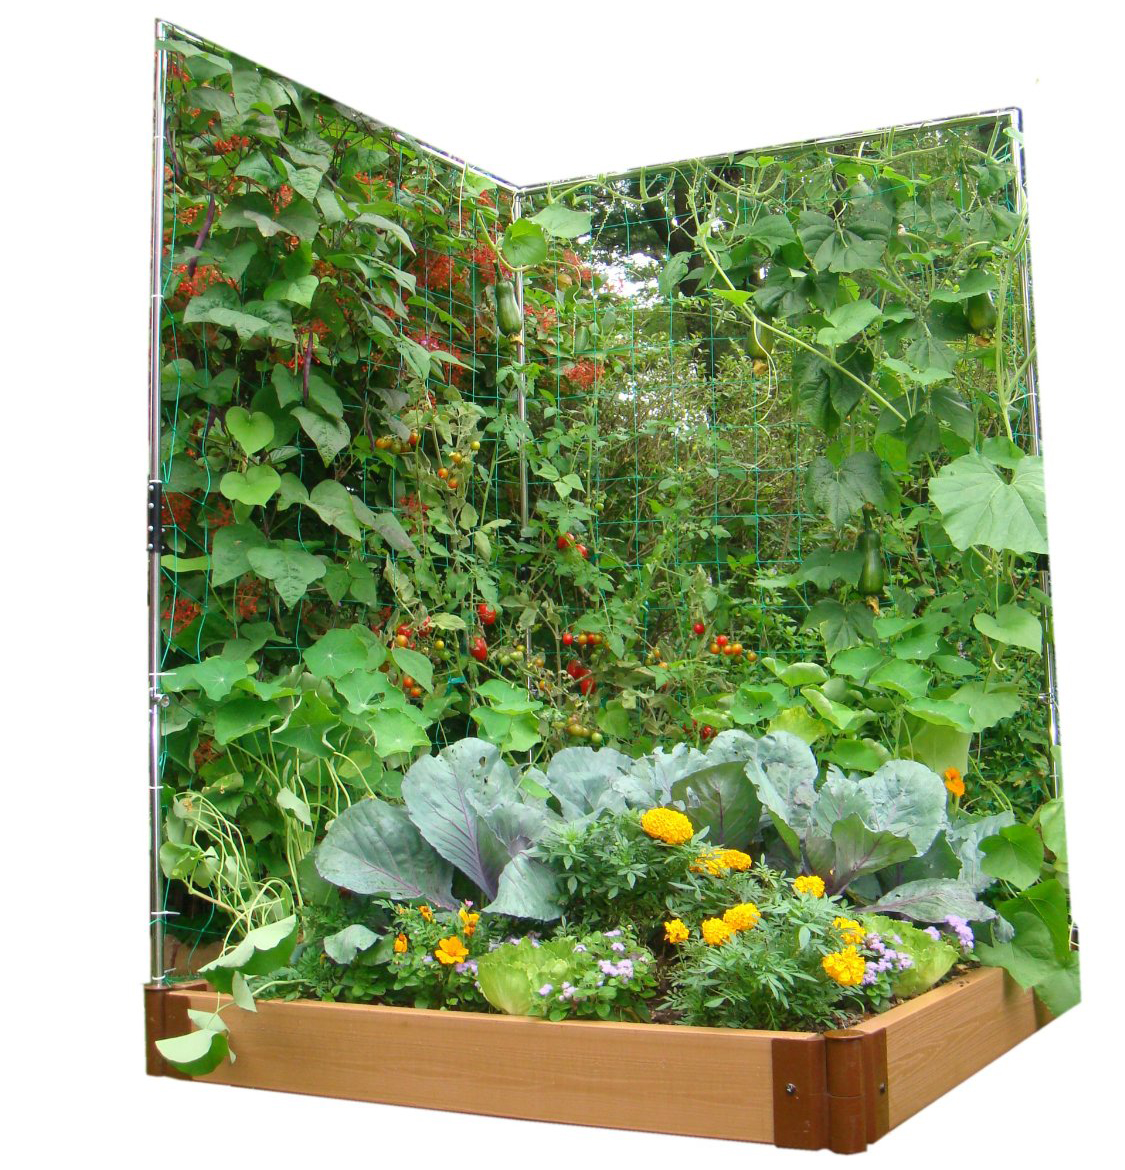 Vertikal Gardinen 9 43 Vegetable Gardens Using Vertical Gardening Ideas